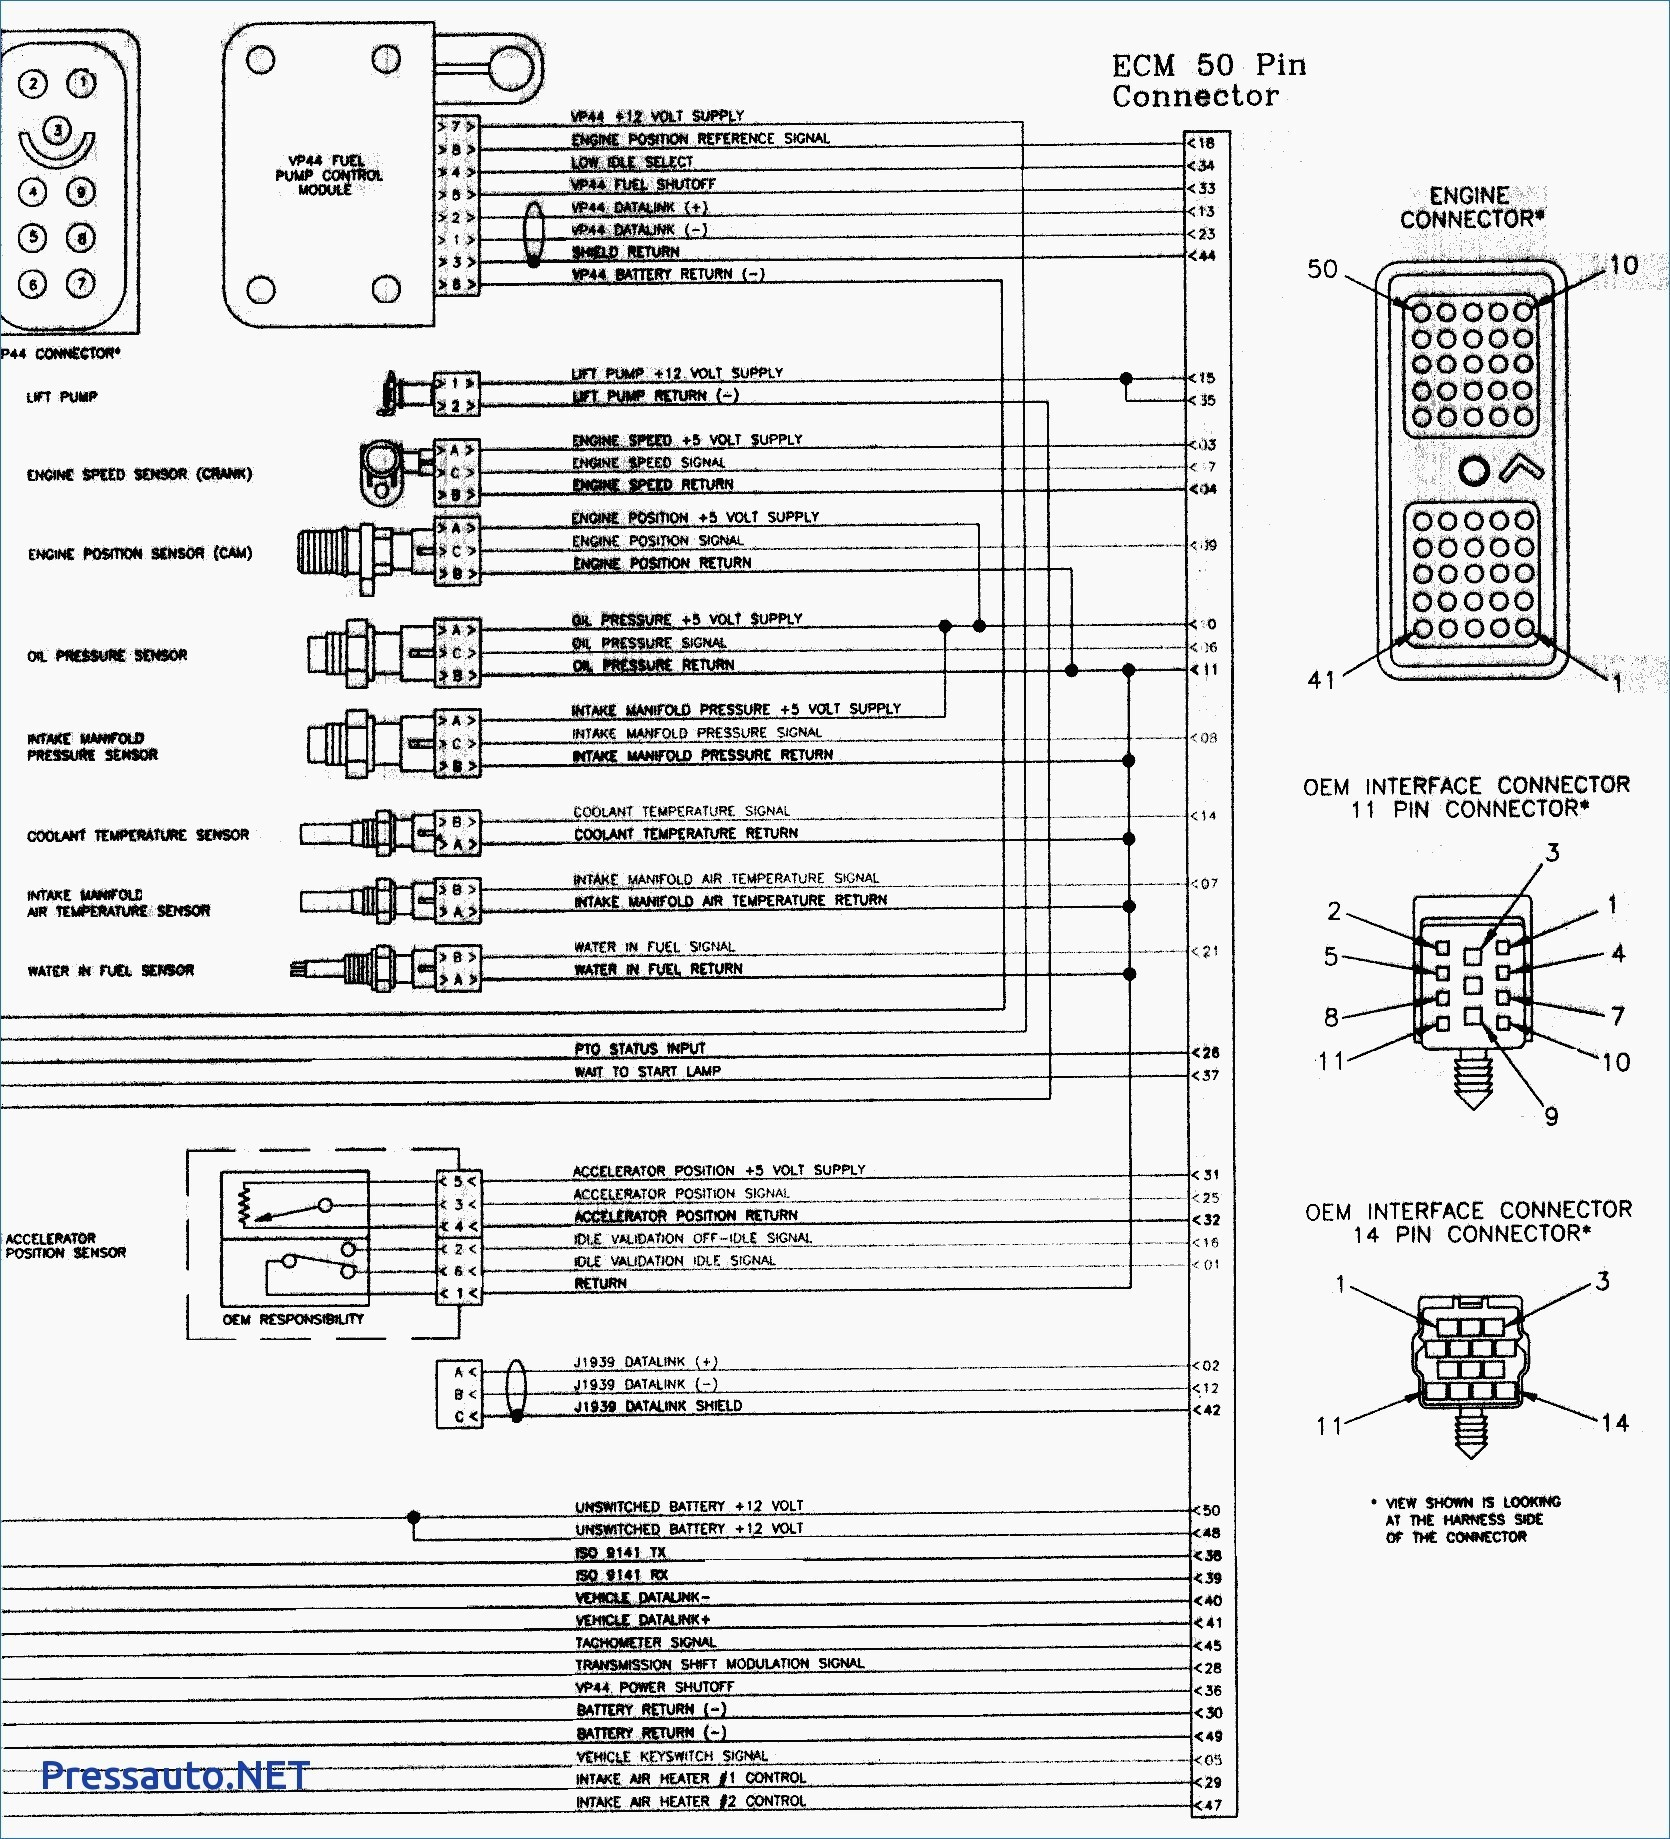 98 dodge ram trailer wiring diagram download 2000 dodge dakota radio wiring harness diagram